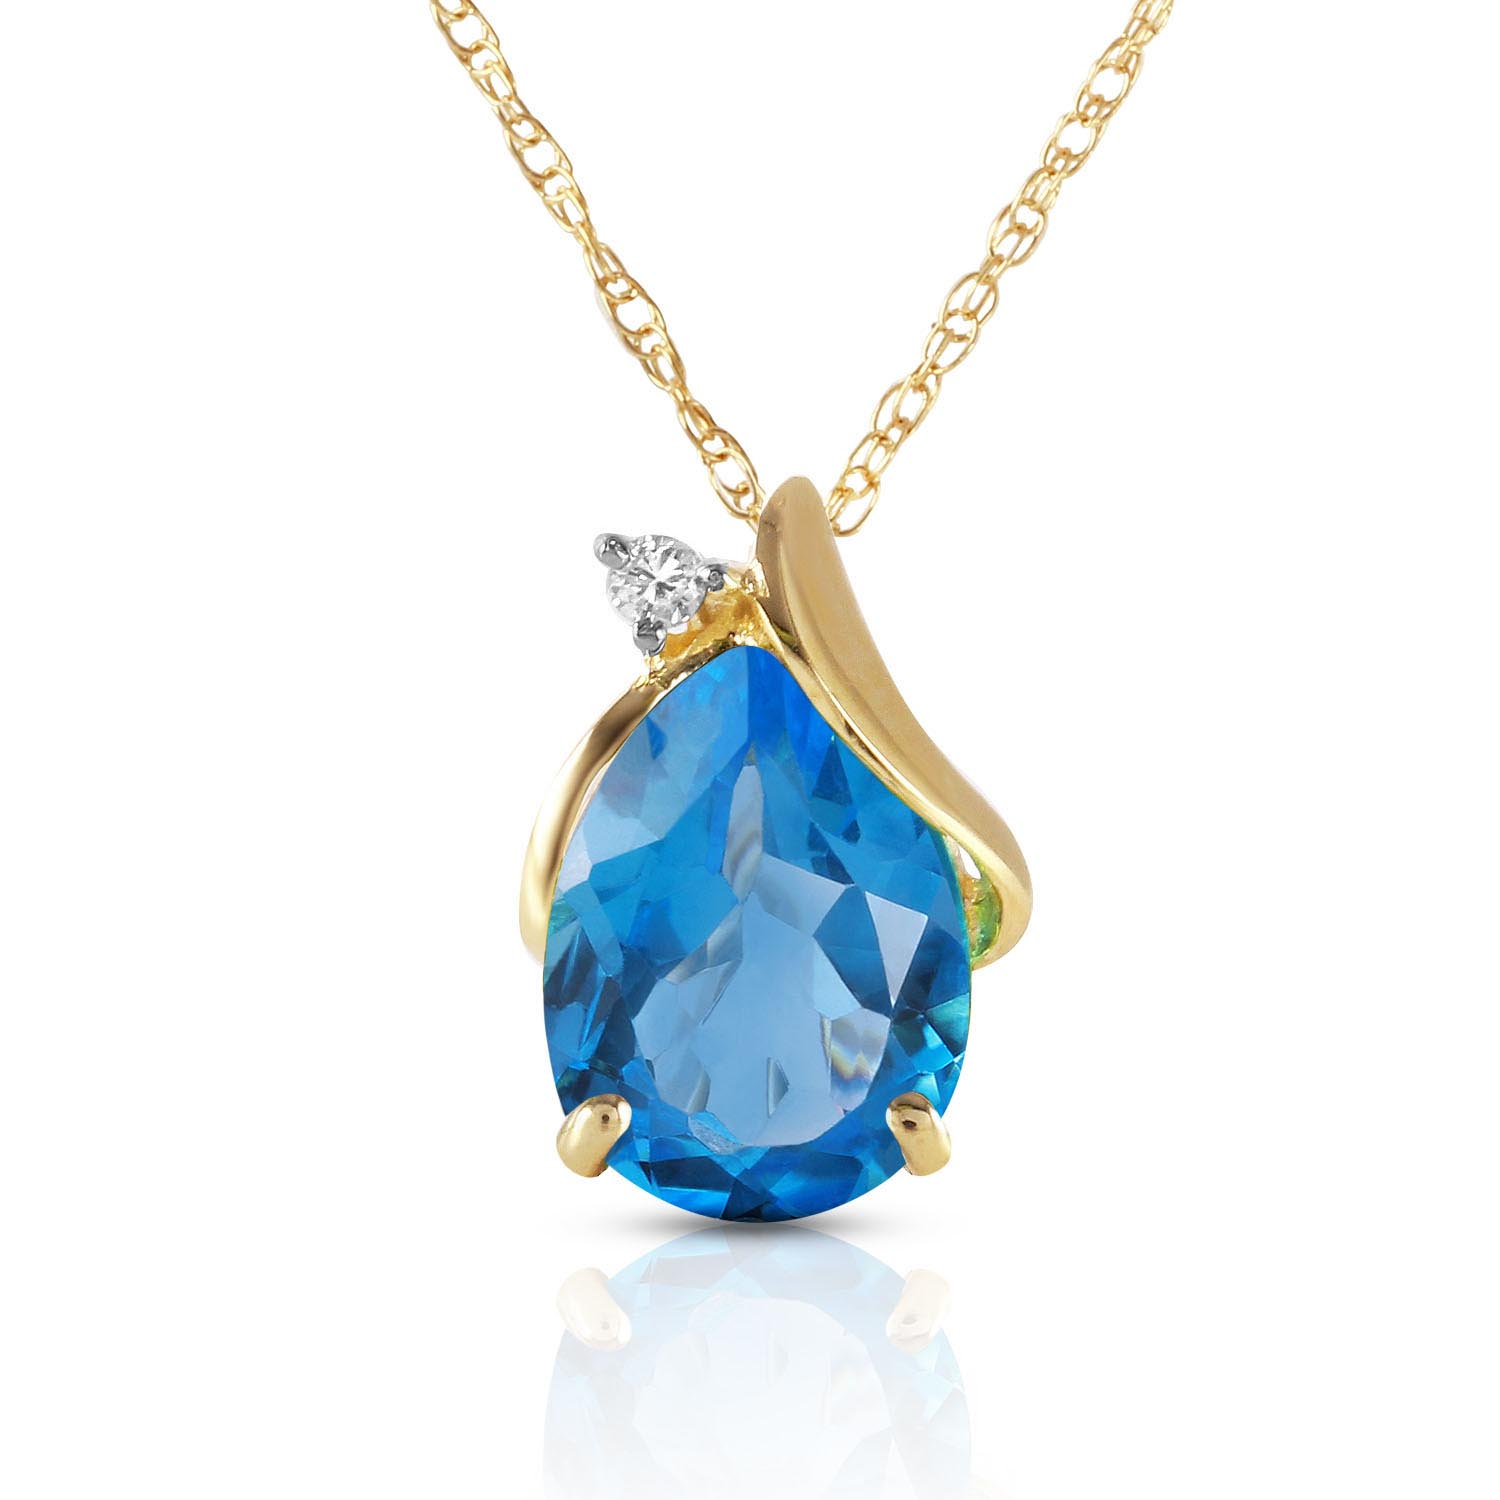 Bargain Blue Topaz and Diamond Pendant Necklace 2.5ct in 9ct Gold Stockists